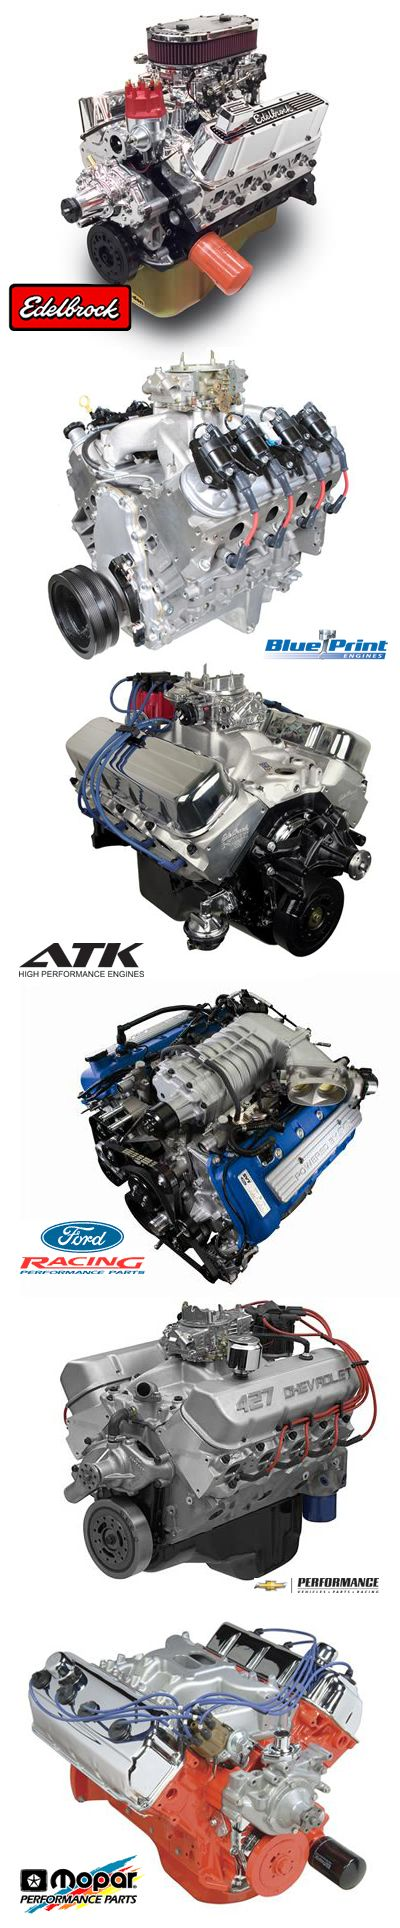 With crate engines from top brands like BluePrint Engines, Chevrolet Performance, Ford Racing, Mopar Performance, Edelbrock, and more, you are sure to find the complete long block assembly for your Chevy, Ford or Mopar. <<< repinned by www.BlickeDeeler.de | Follow us on #Facebook > www.facebook.com/BlickeDeeler